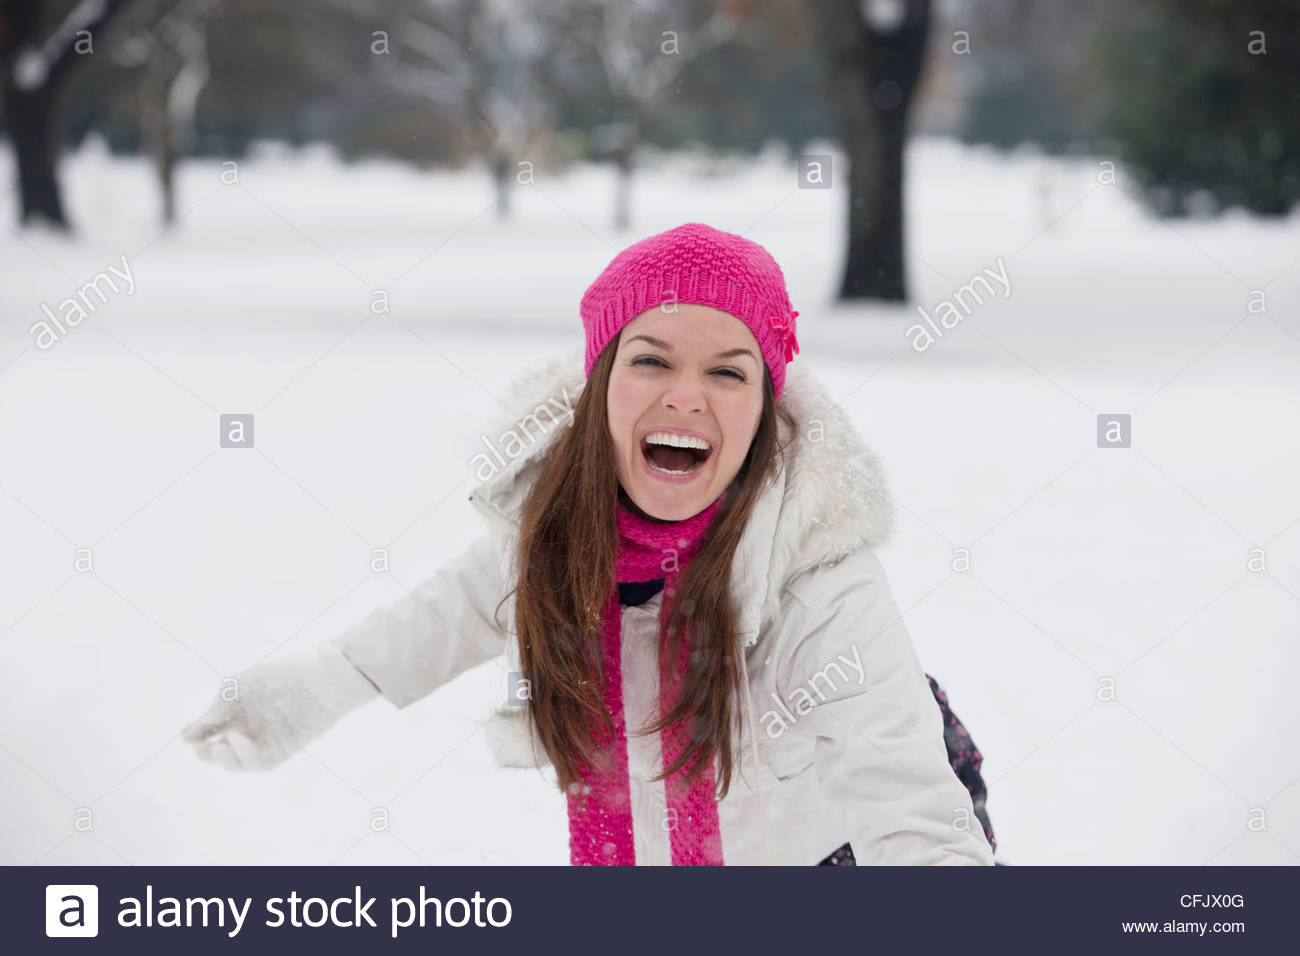 A young woman throwing a snowball, laughing - Stock Image